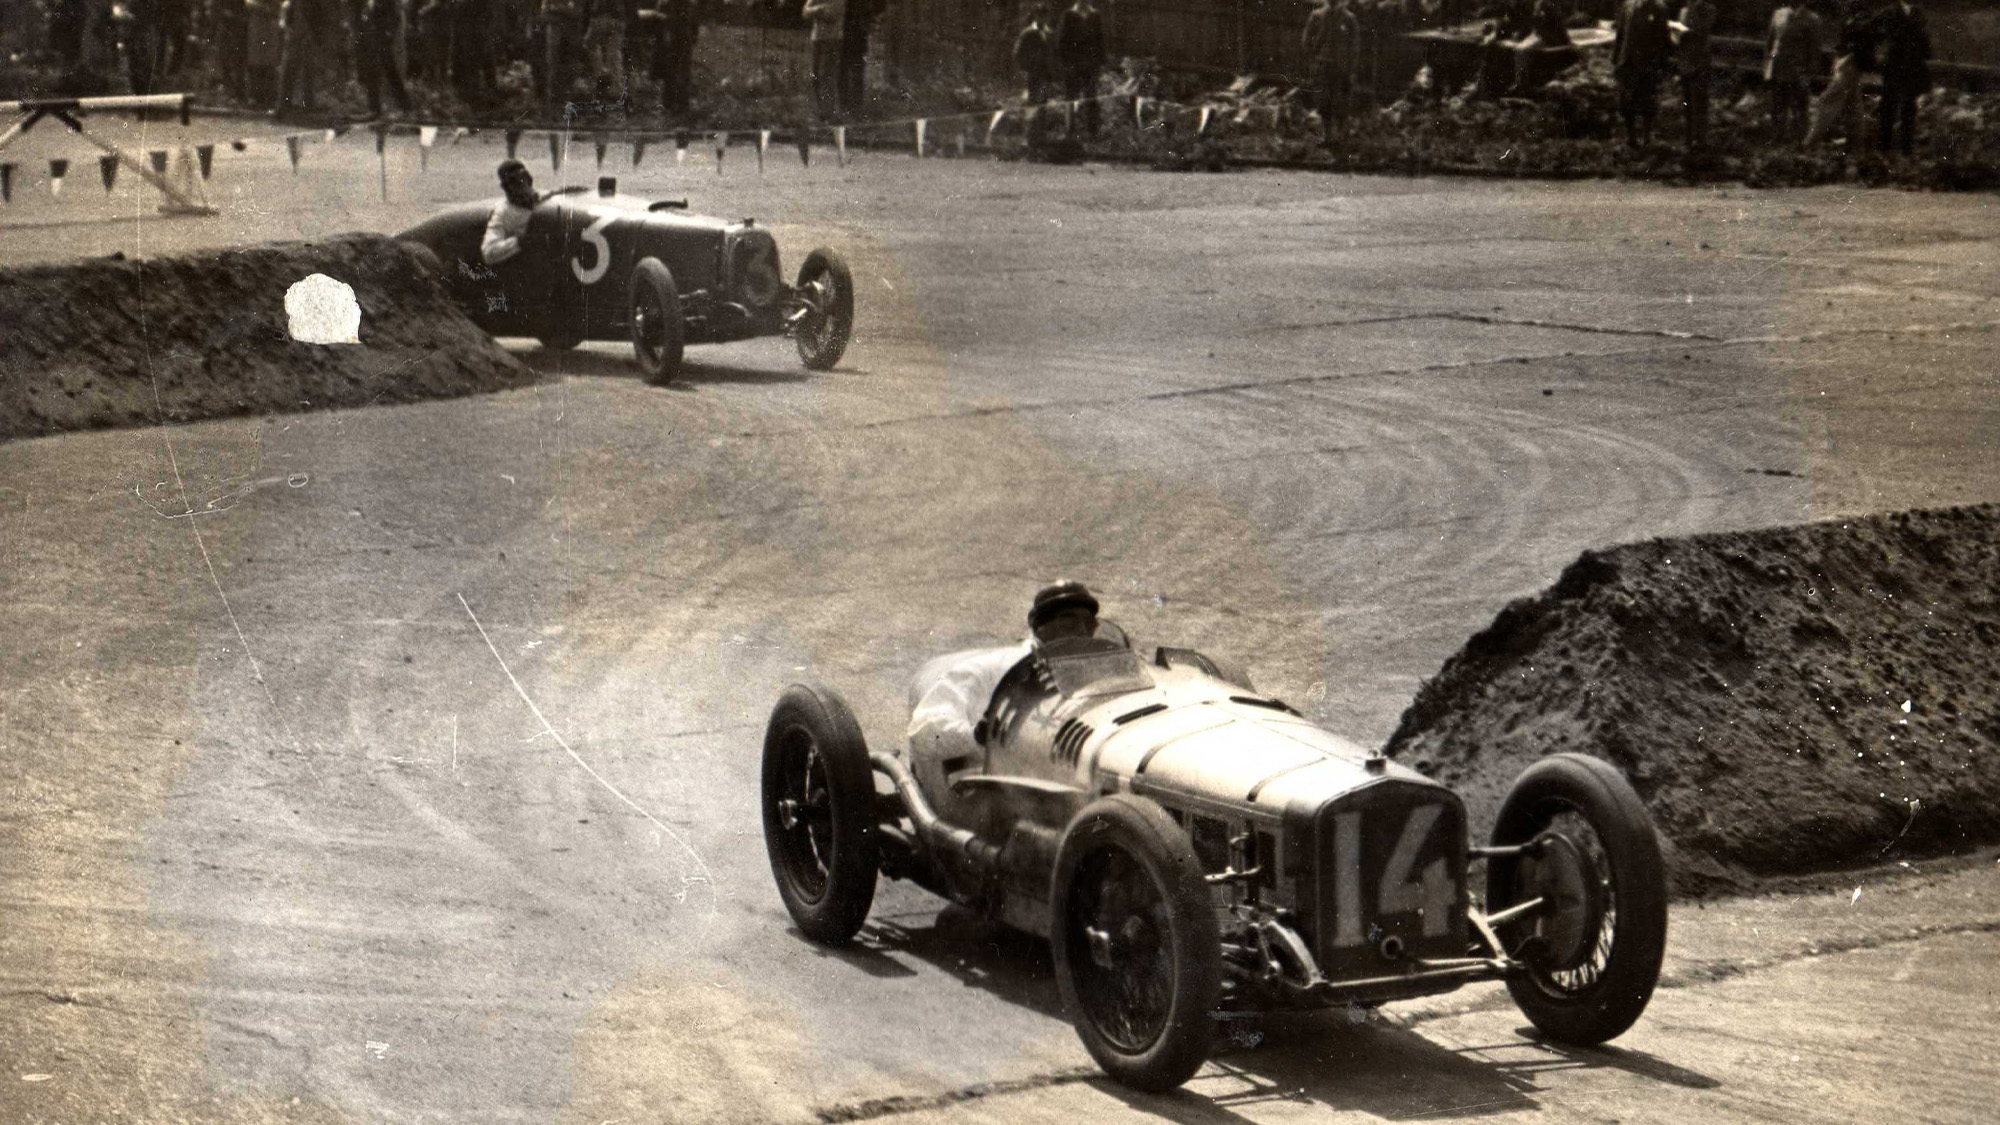 Senechal leads Eyston in the first British Grand Prix at Brooklands in 1926